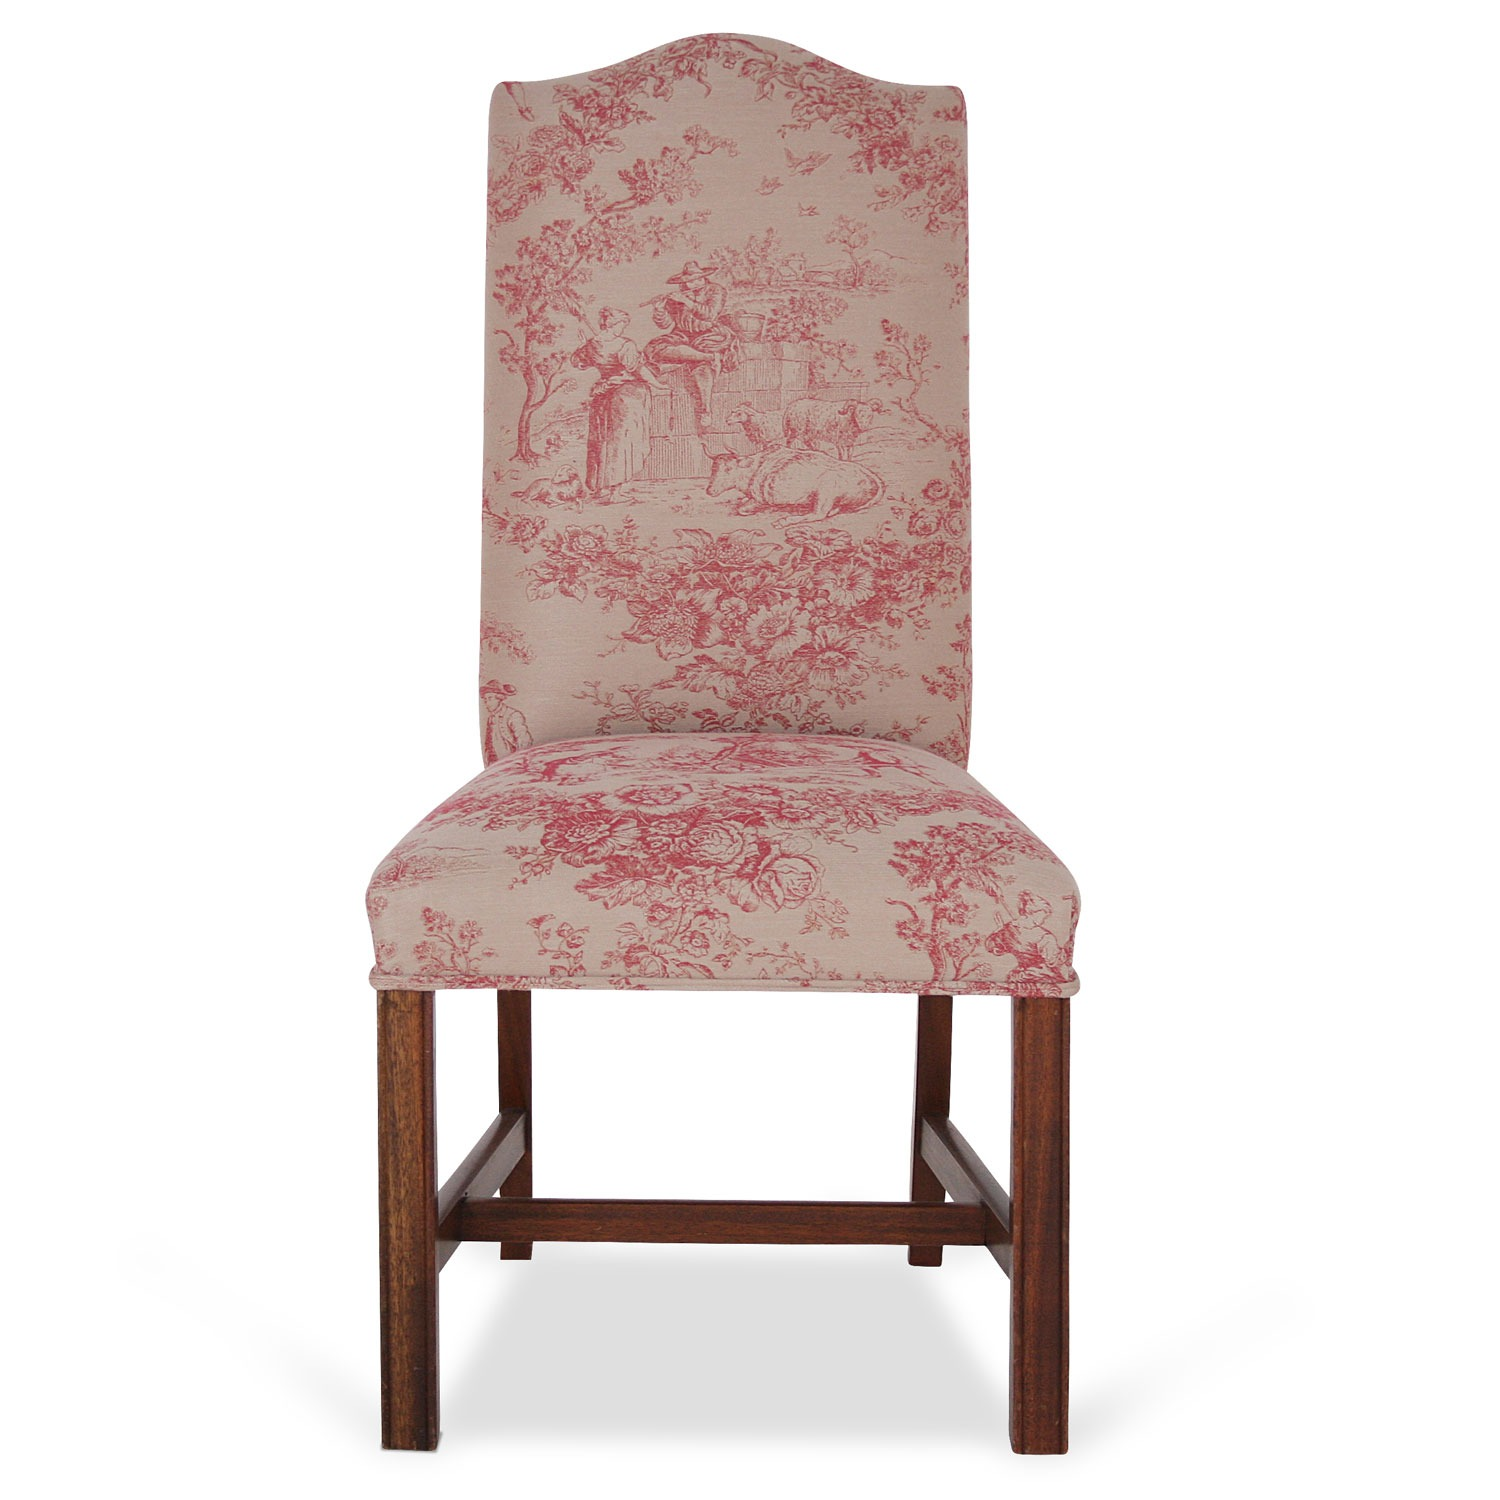 Toile Chair Cathedral Dining Chair In Toile De Jouy Fabric Dining